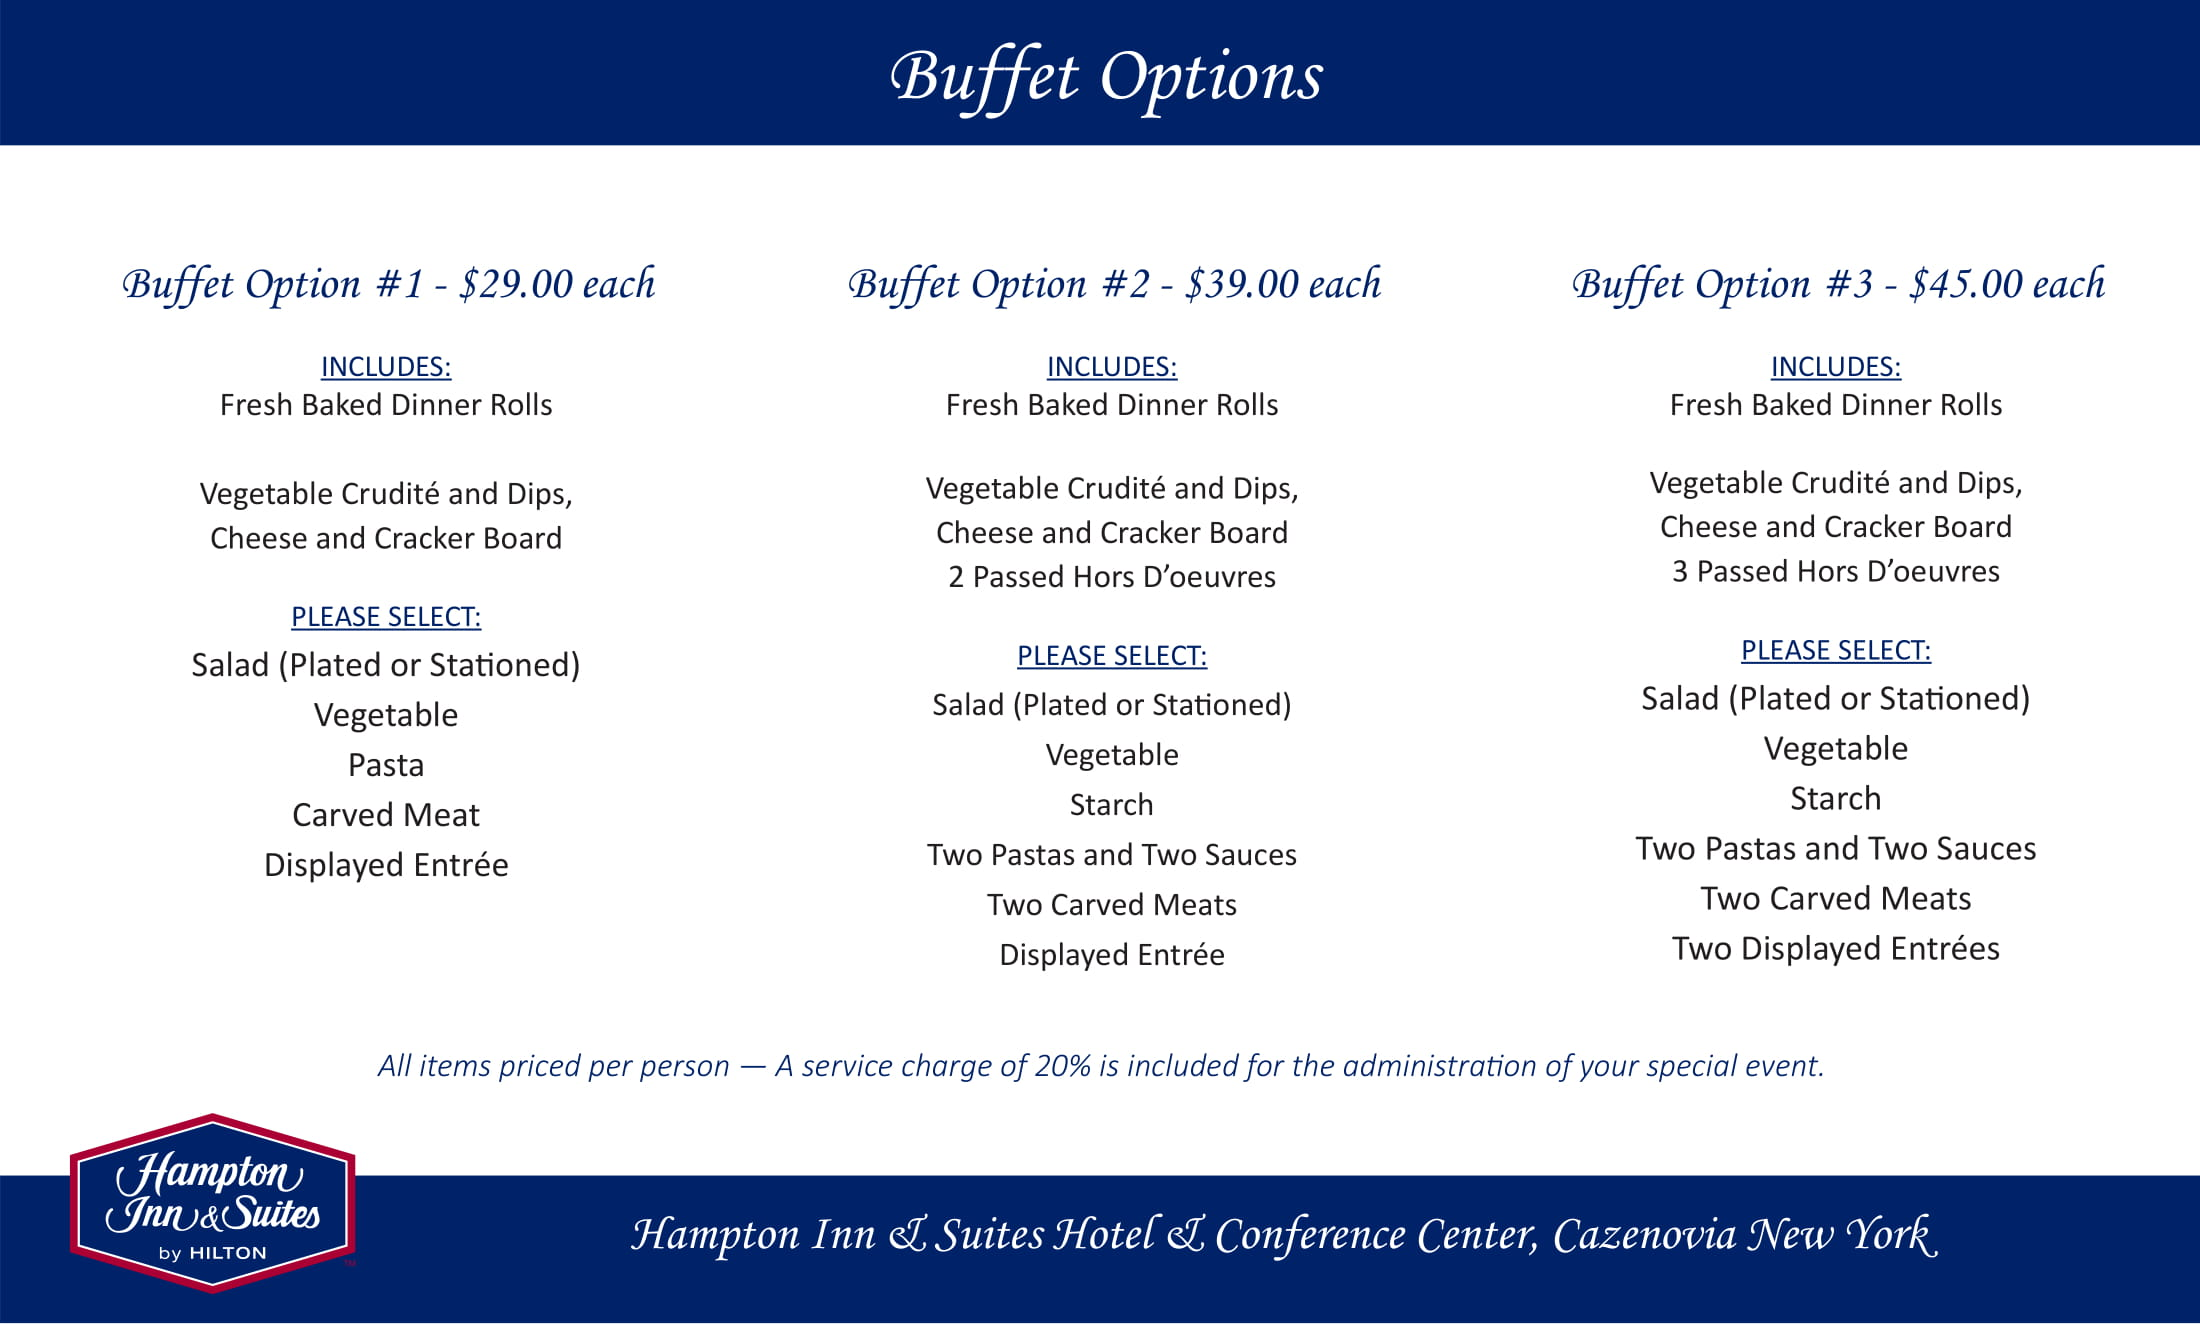 Buffet Options